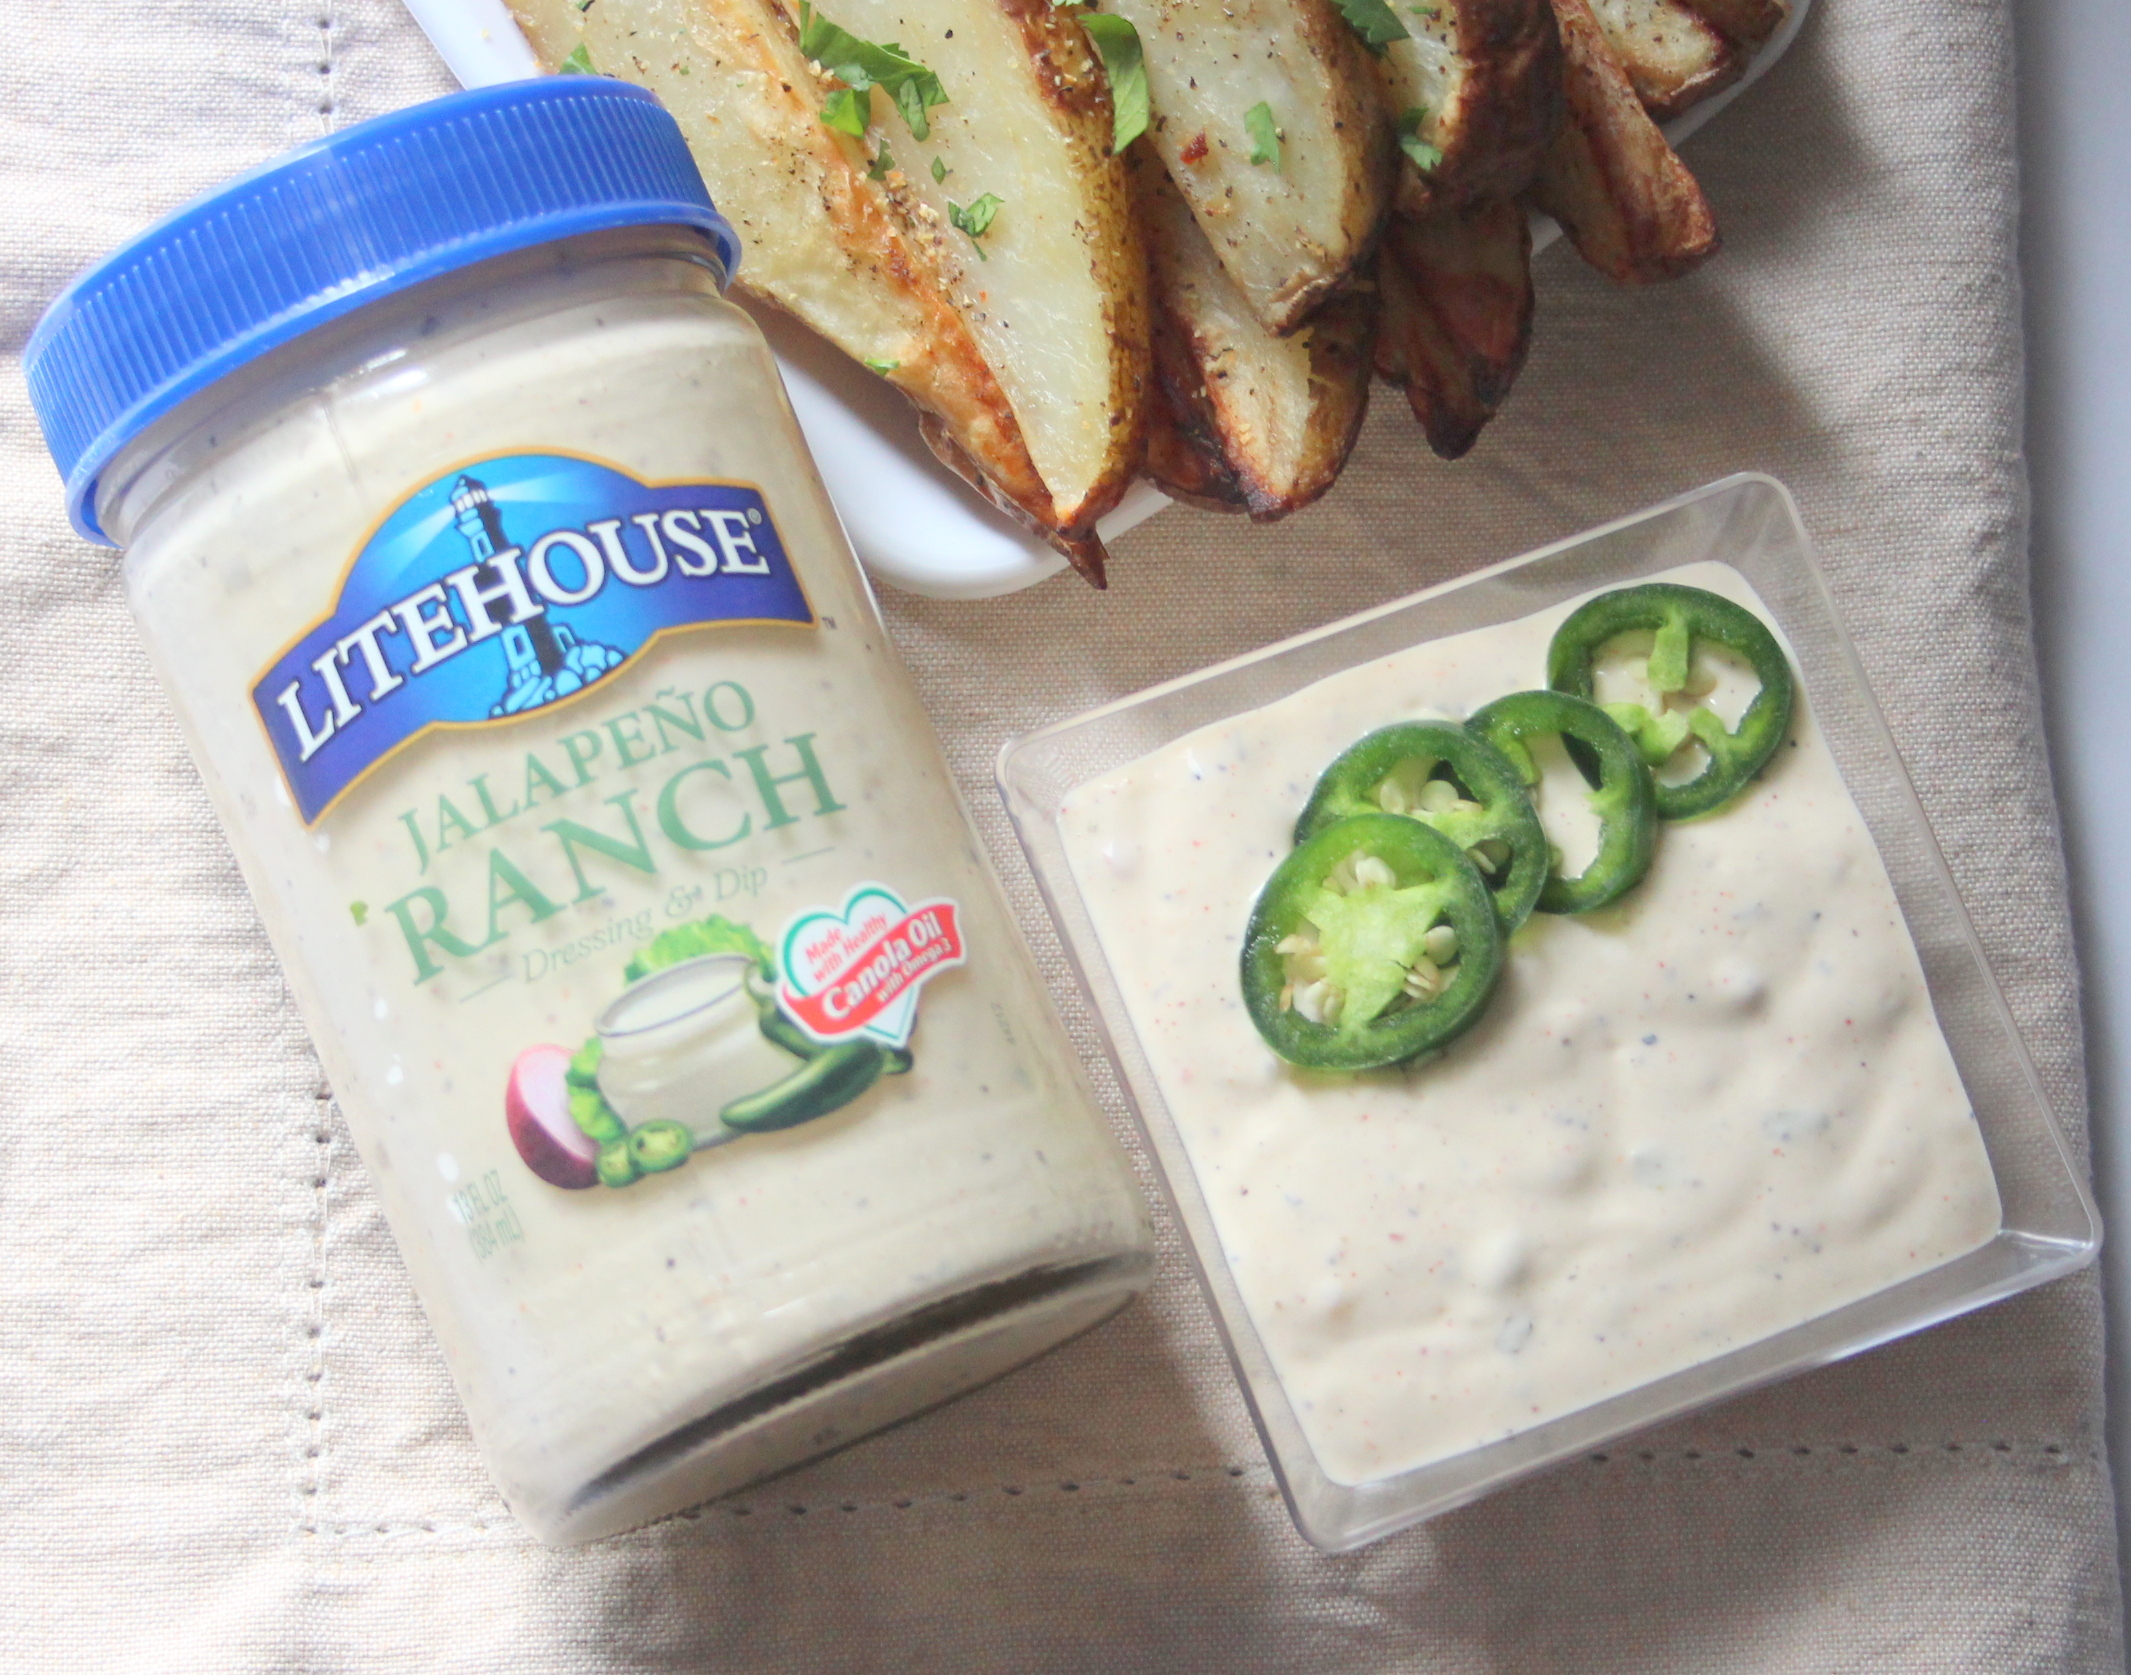 How to use Jalapeno Ranch Litehouse Dressing